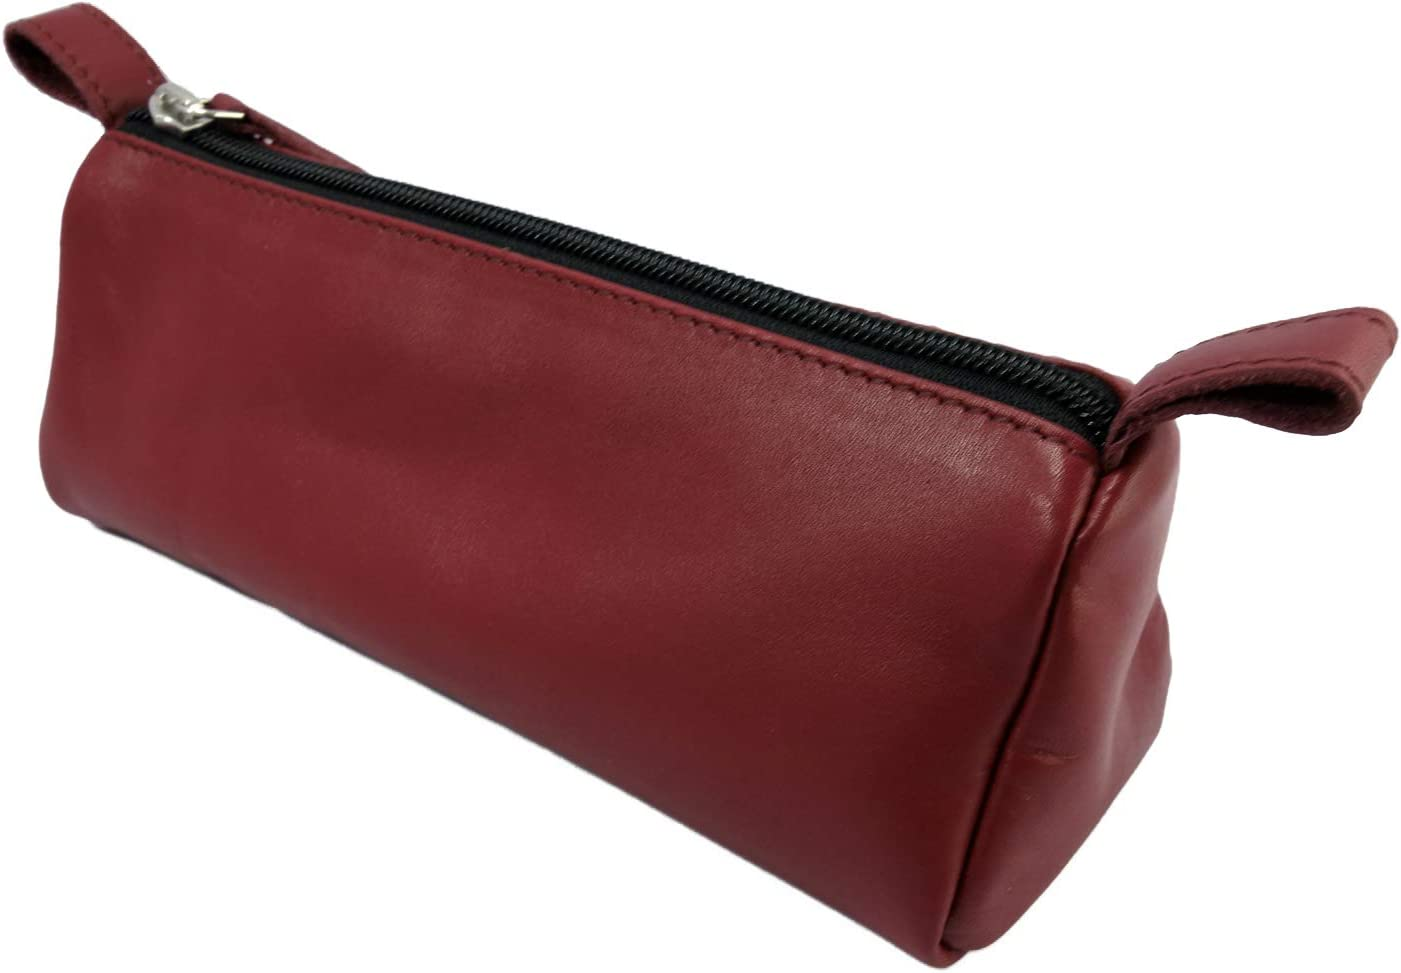 Burgundy Zippered Pen Pouch for School Leather Pencil Case Work /& Office from AurDo